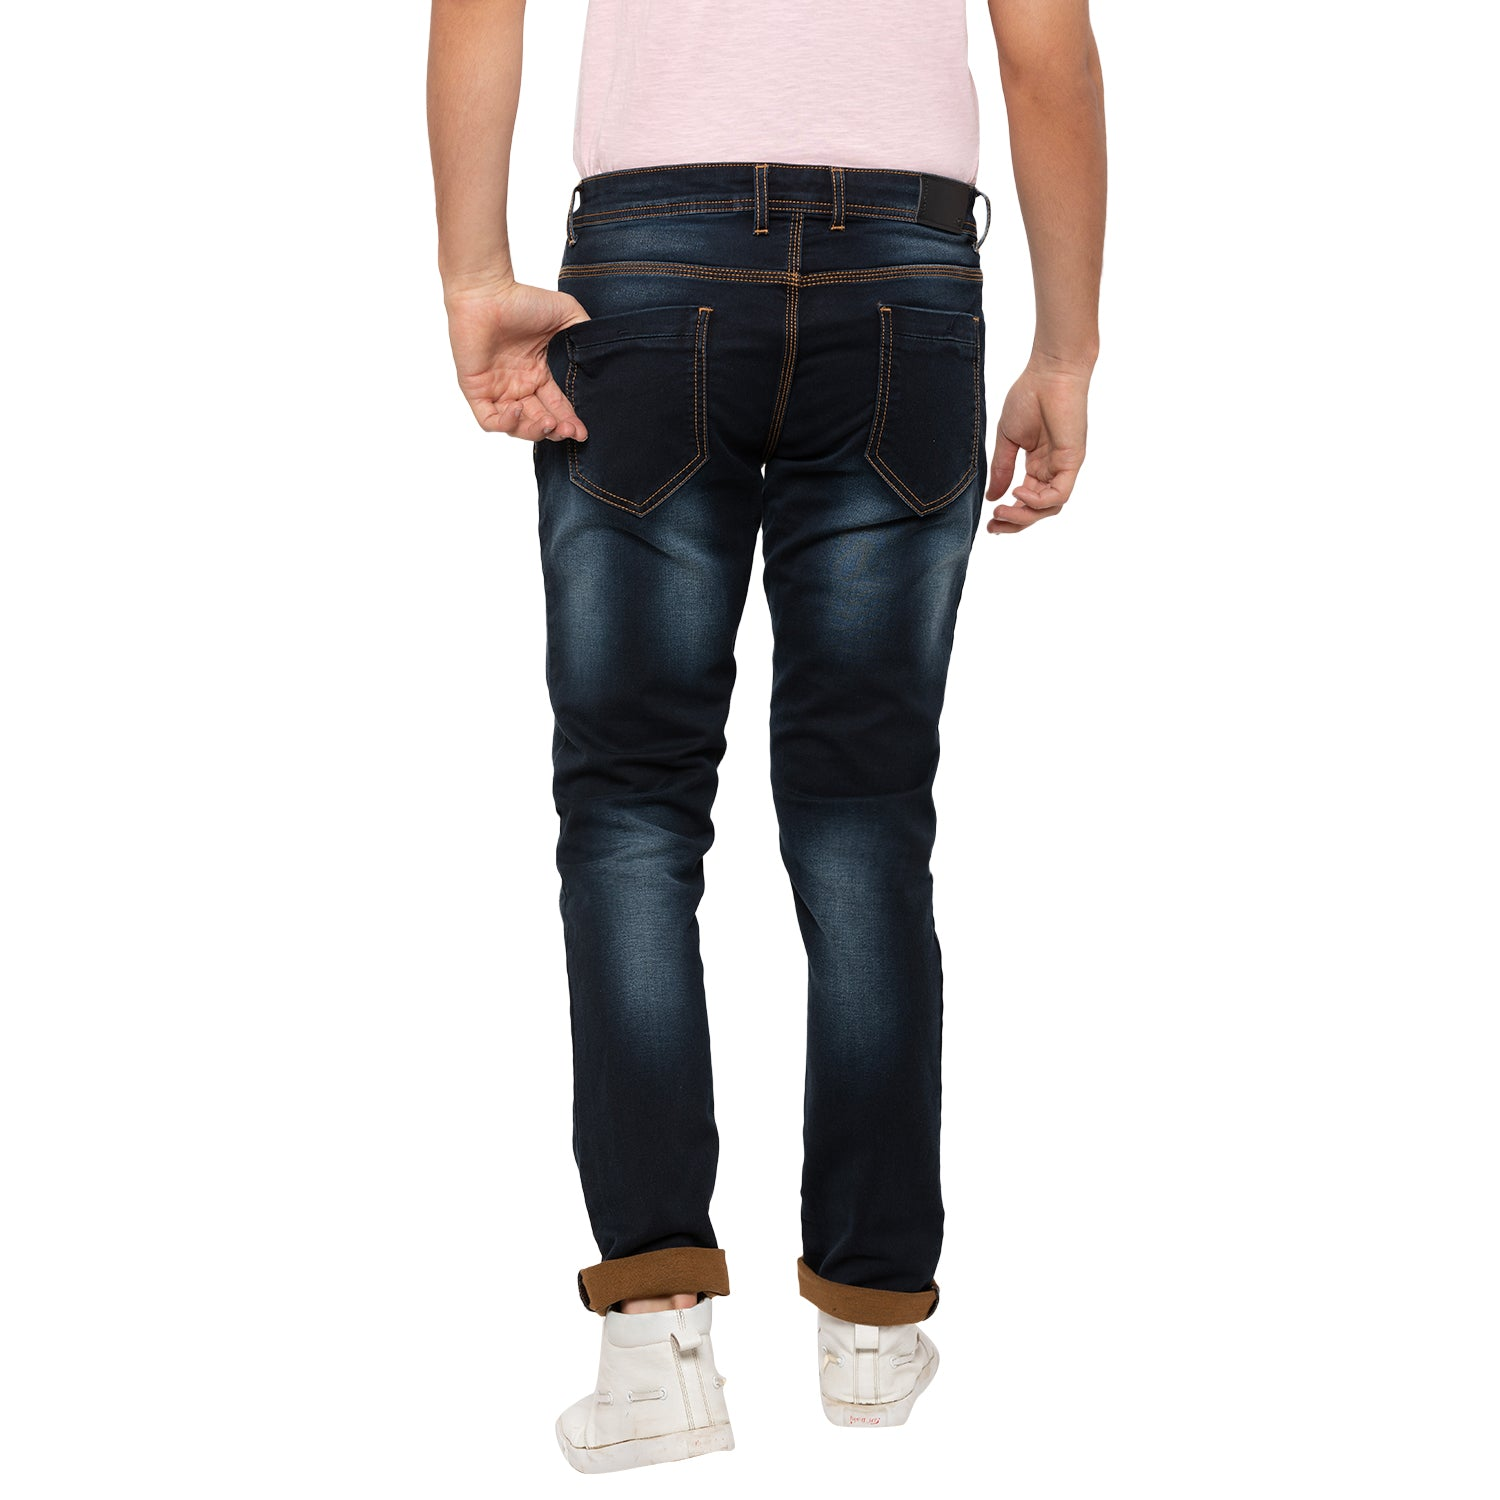 Globus Navy Washed Clean Look Jeans-3